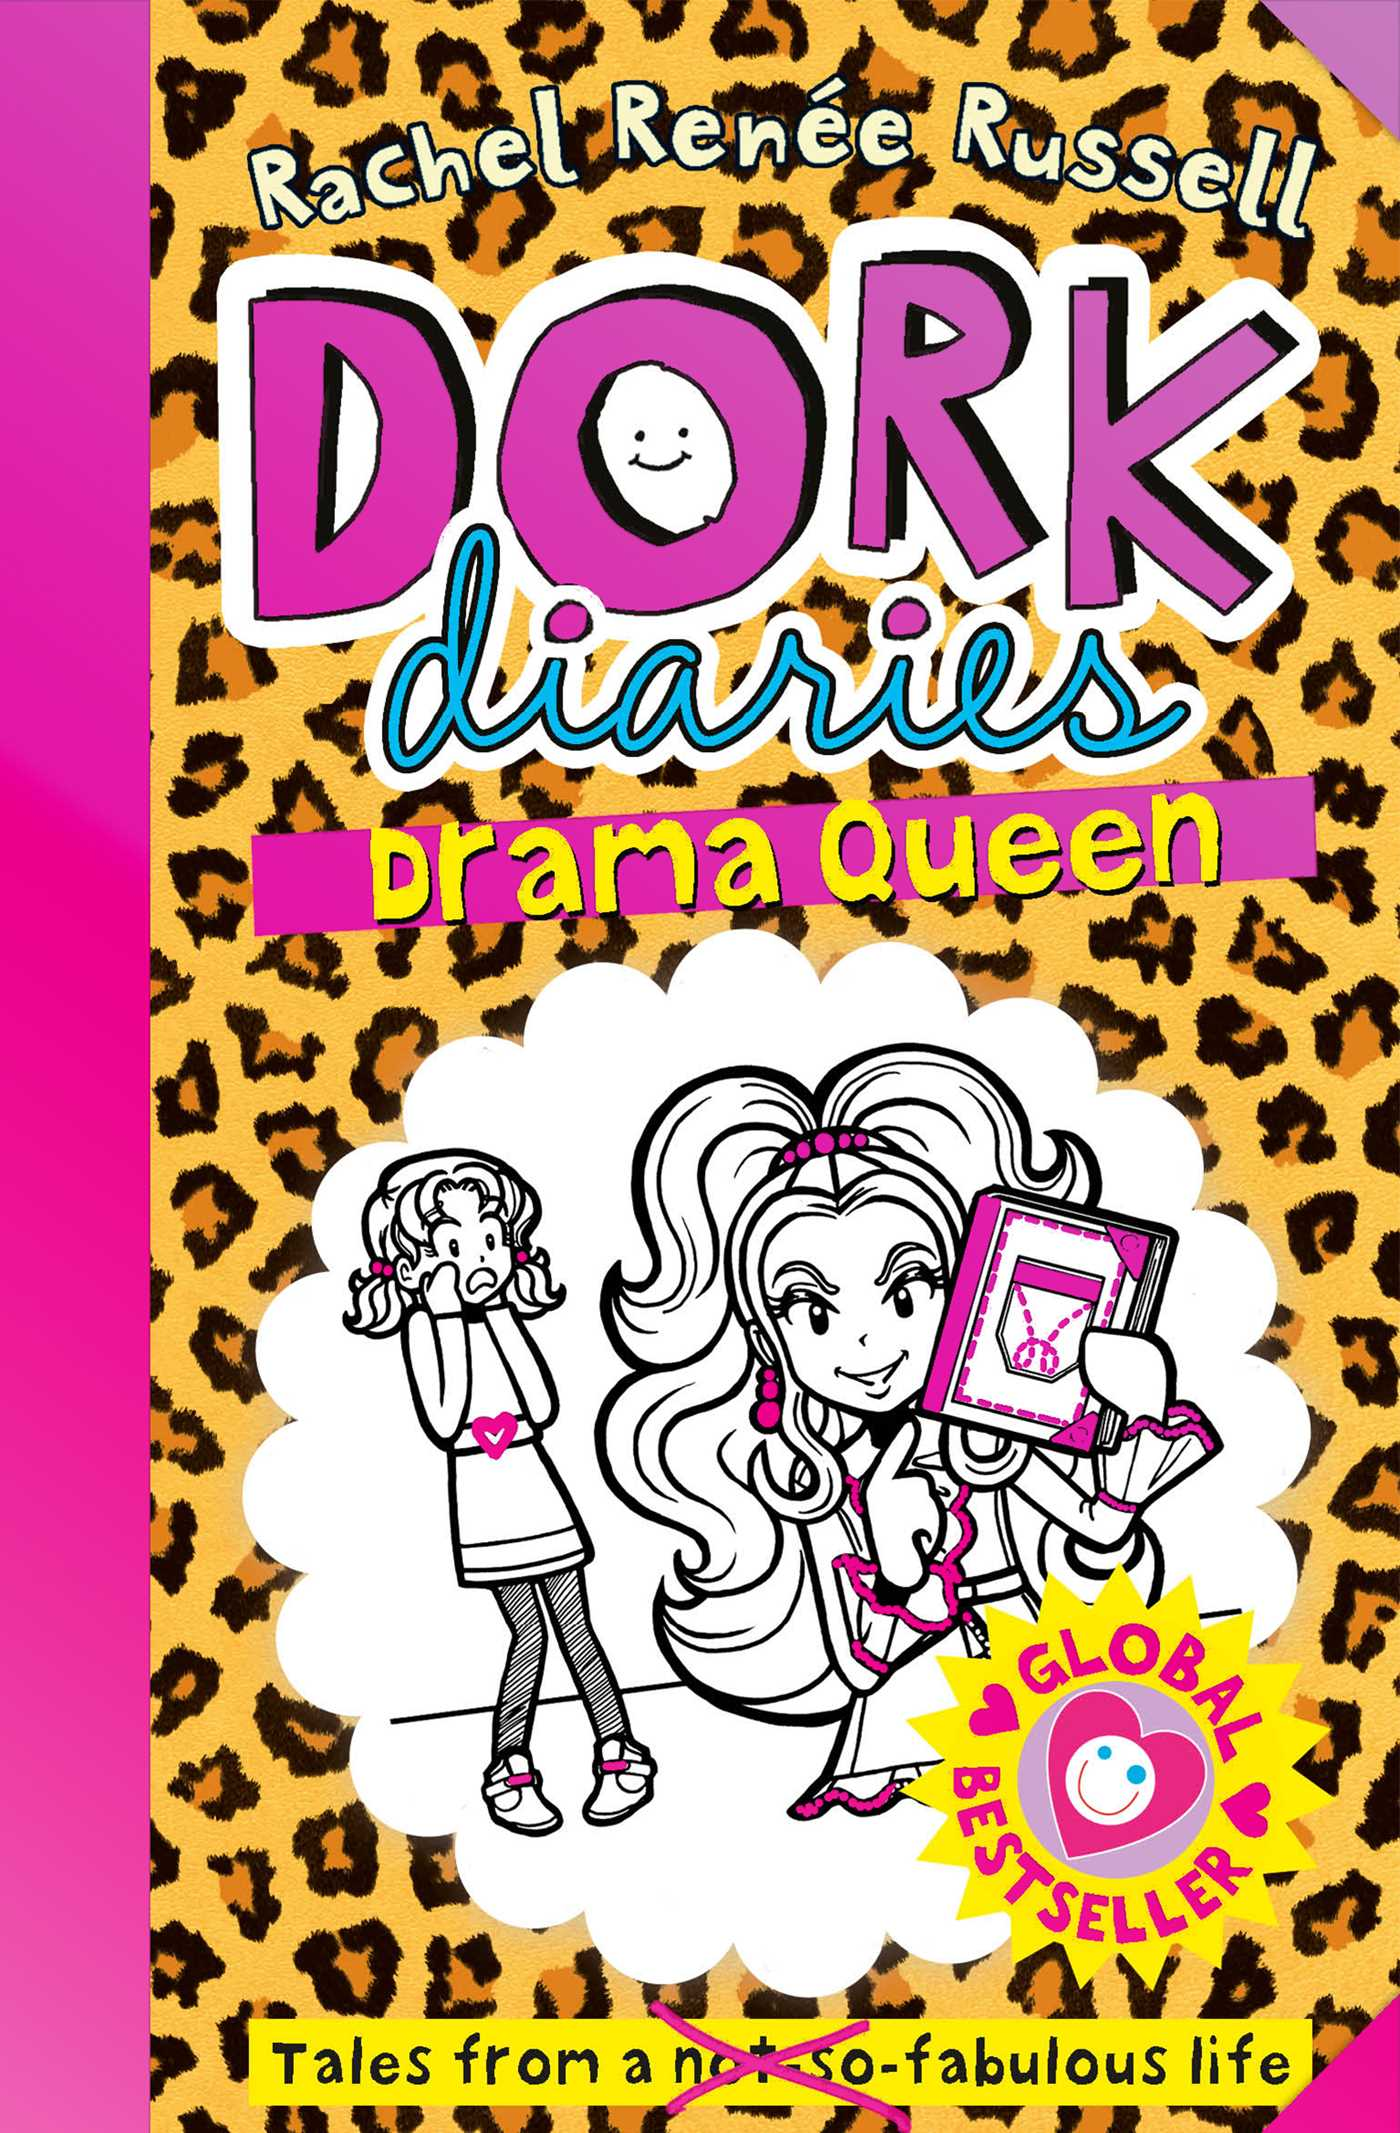 Dork diaries drama queen book by rachel renee russell official book cover image jpg dork diaries drama queen solutioingenieria Choice Image